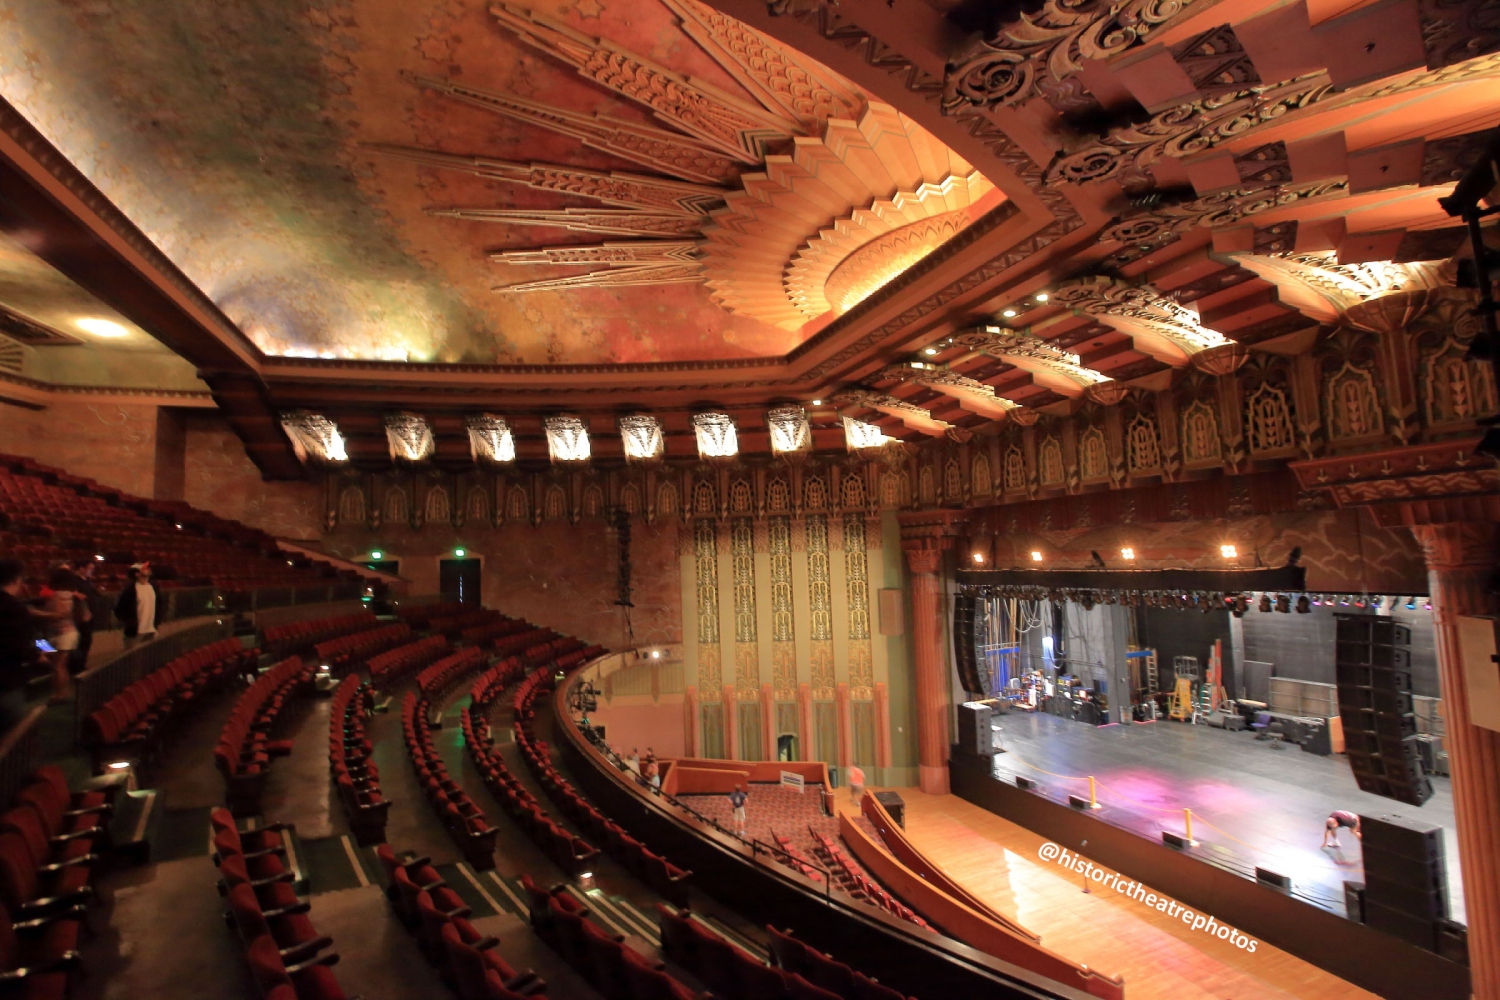 The wiltern koreatown historic theatre photography for Los angeles interior